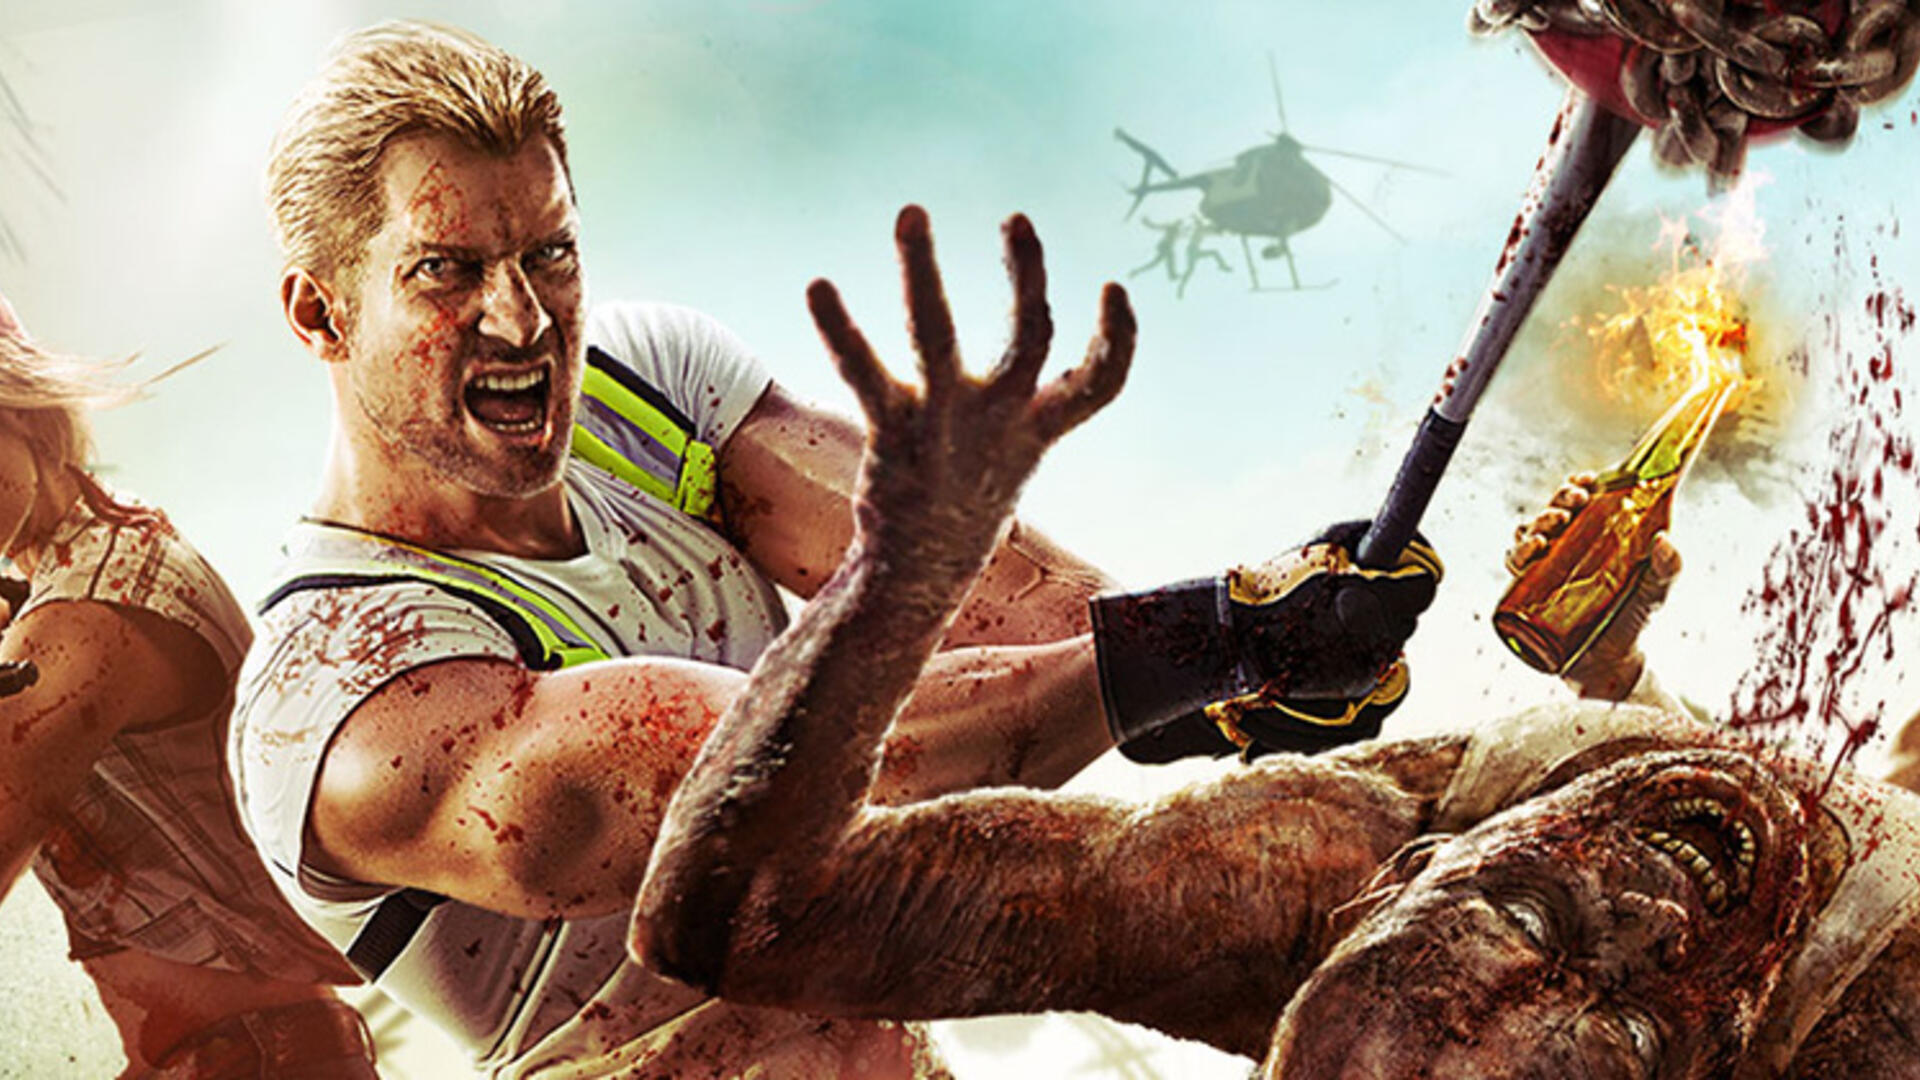 Dead Island 2 Lives, as Twitter Account Confirms the Dead Are Still Set to Rise Once More